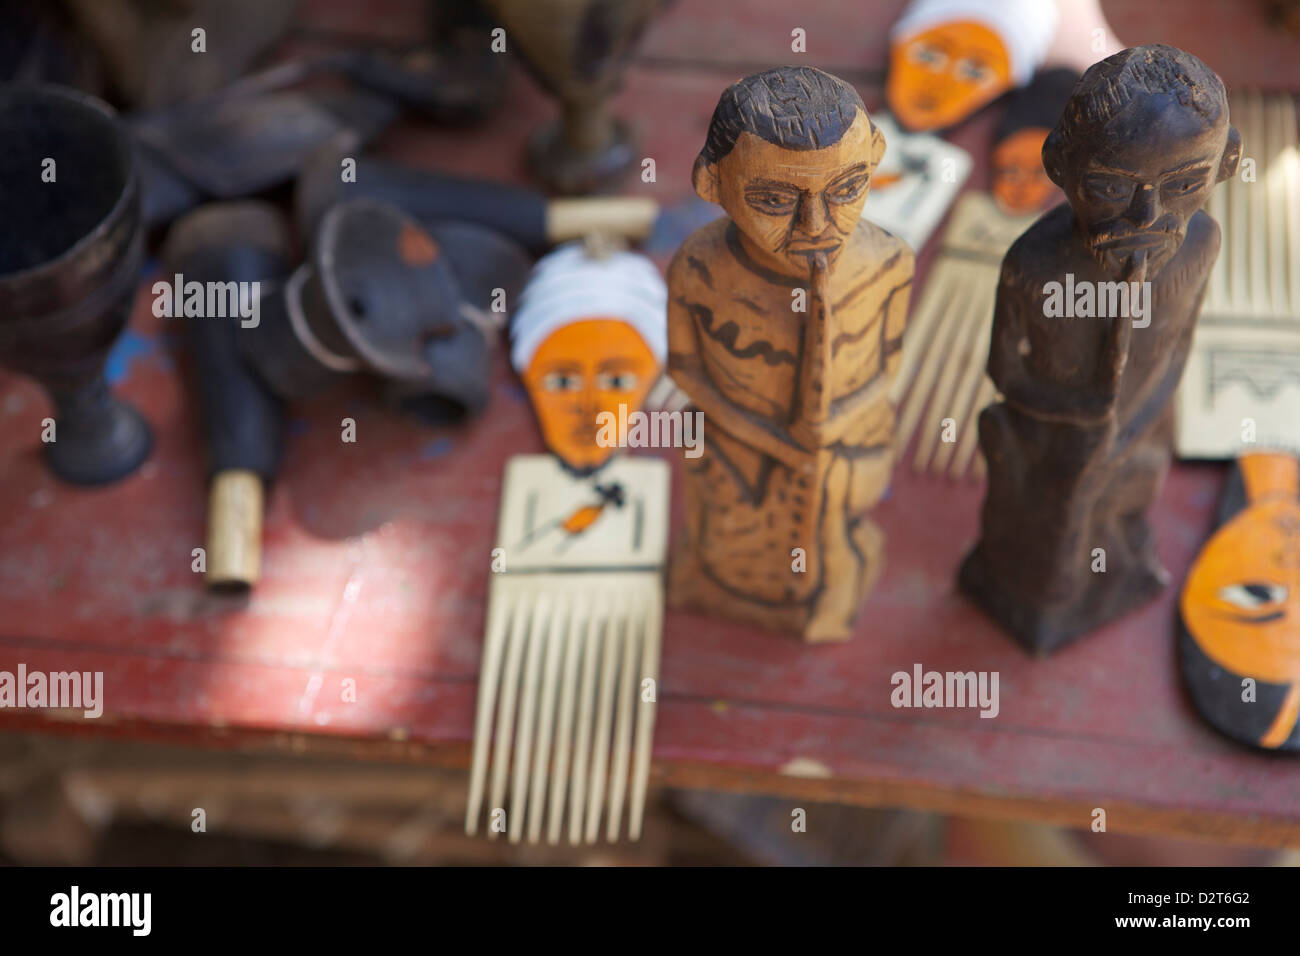 Carved souvenirs for sale, Chencha, Dorze, Ethiopia, Africa - Stock Image